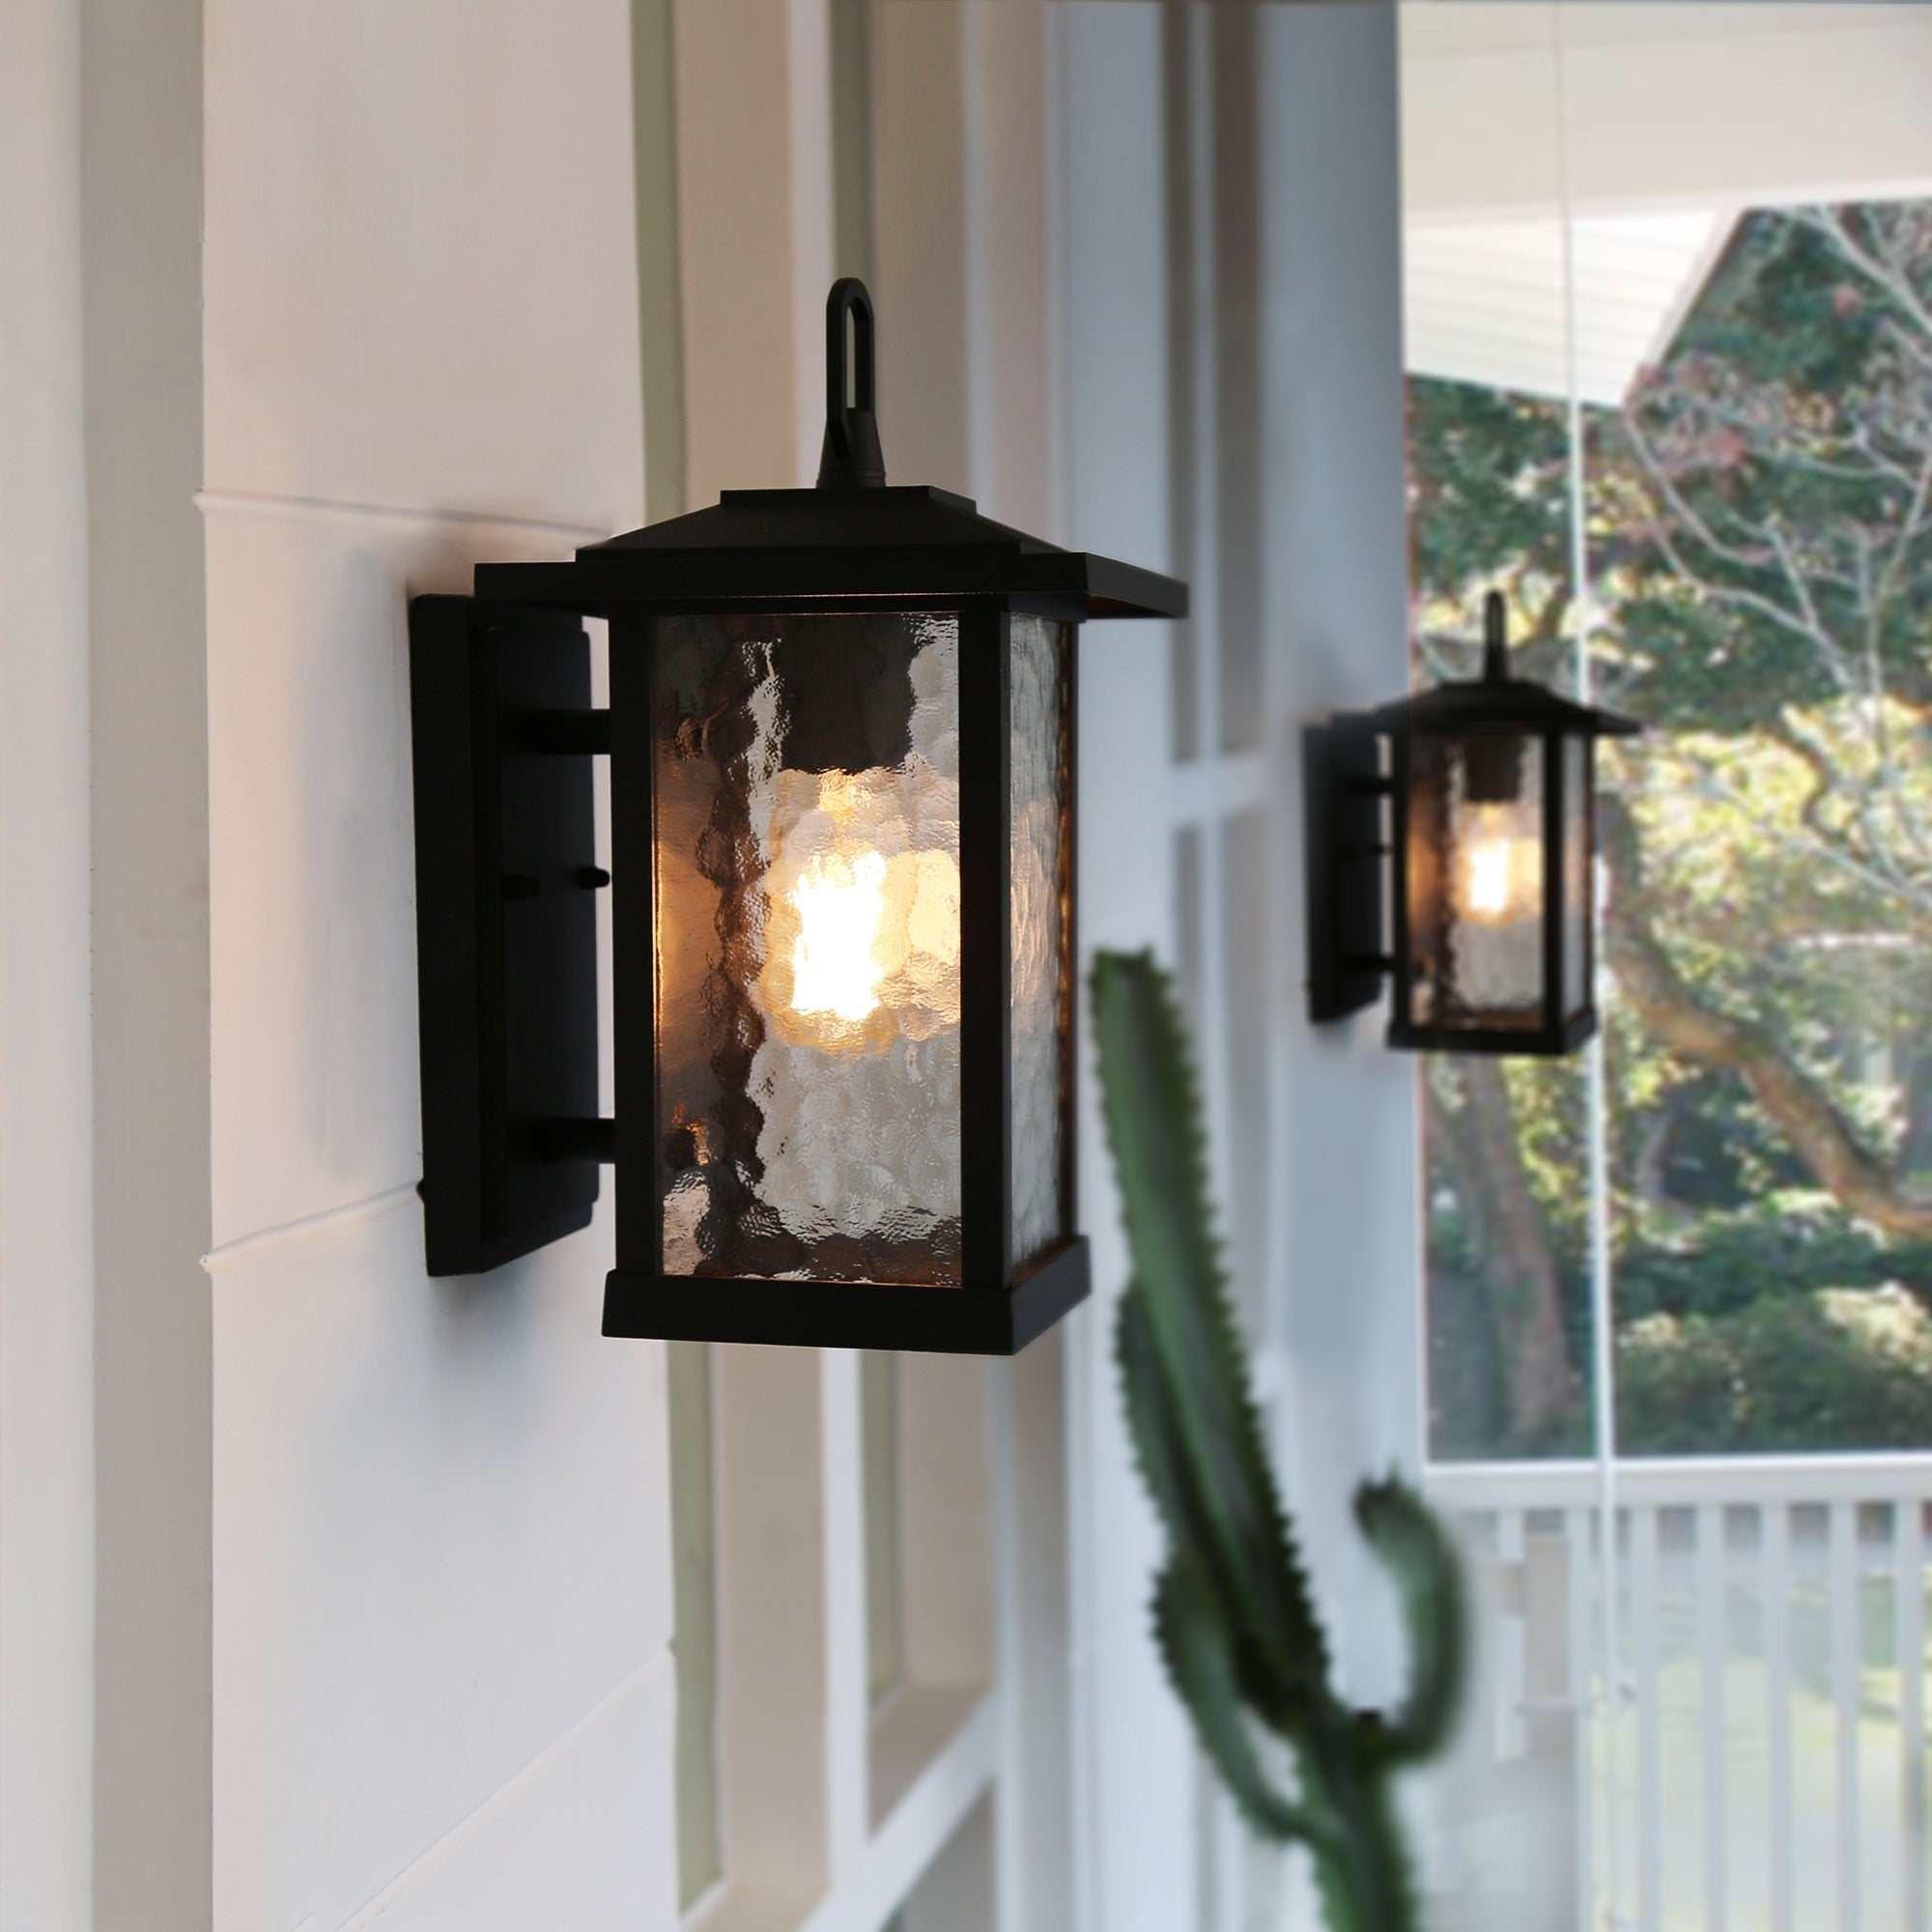 Shop Black Friday Deals On Mid Century Water Glass Outdoor Wall Sconce Lighting In Black Aluminum Alloy W7 X H12 X E8 On Sale Overstock 30975266